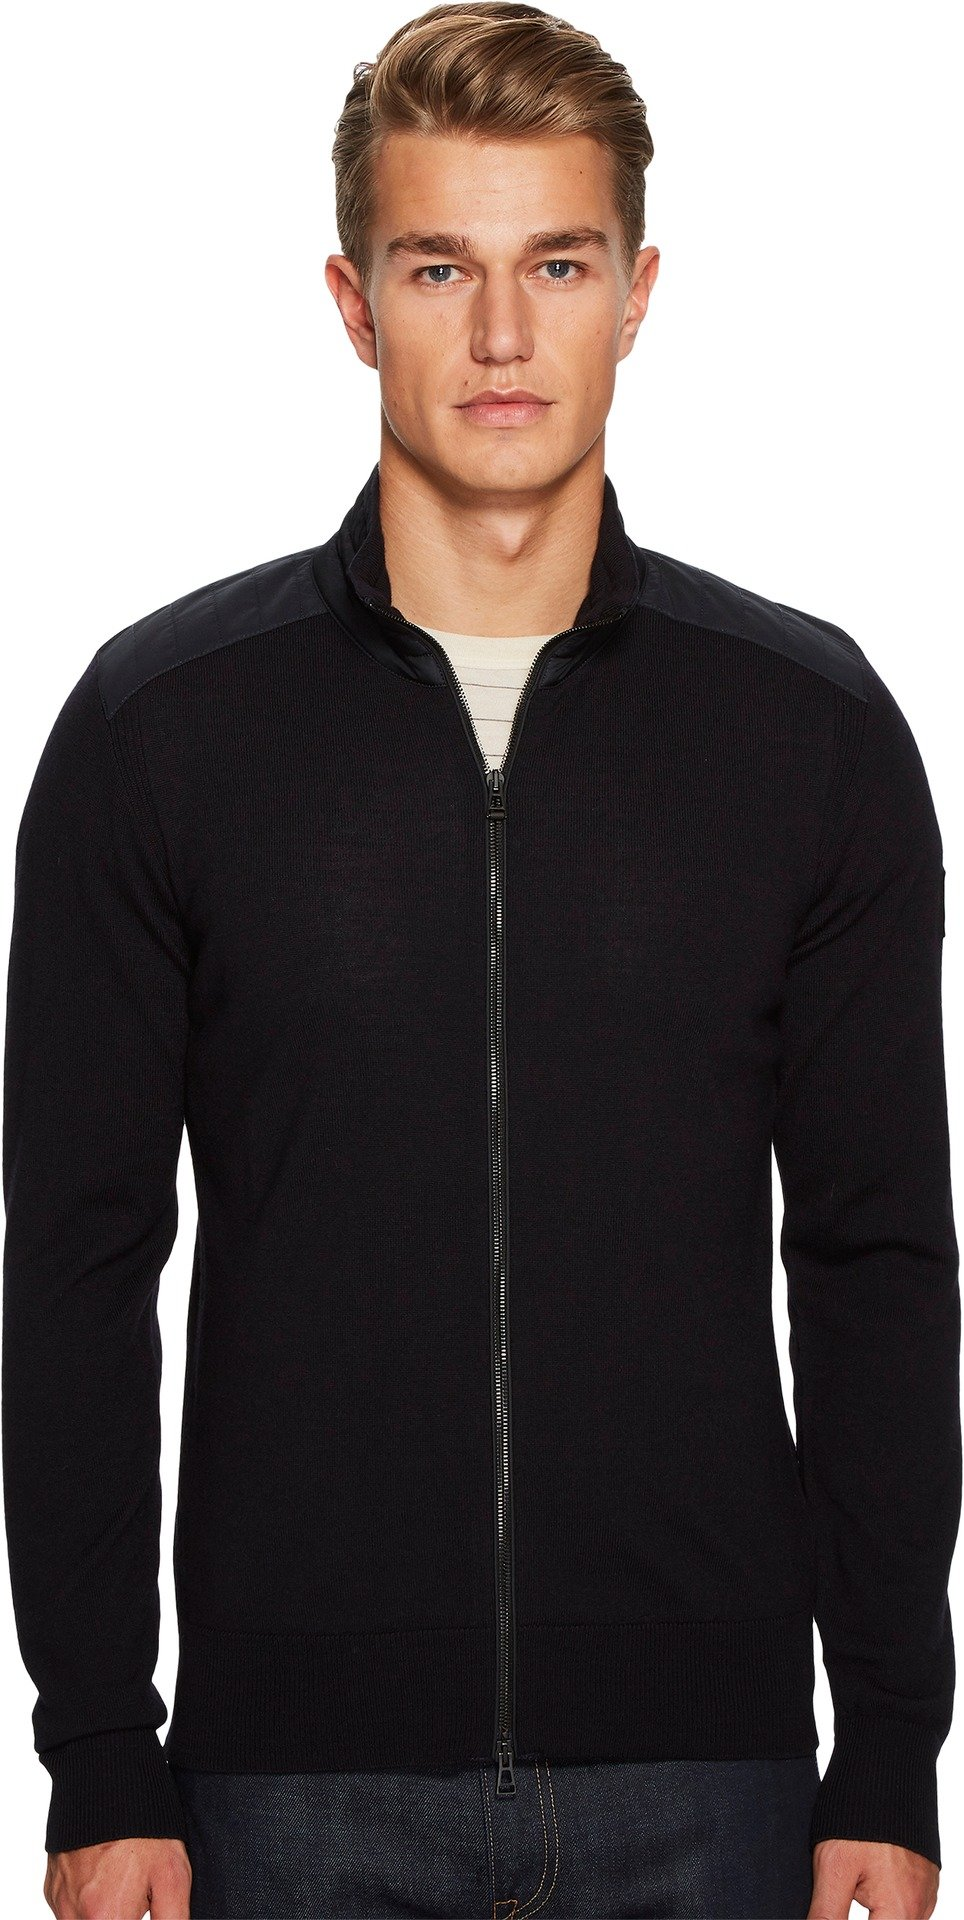 BELSTAFF  Men's Kelby Fine Gauge Merino Full Zip Sweater Dark Navy Sweater